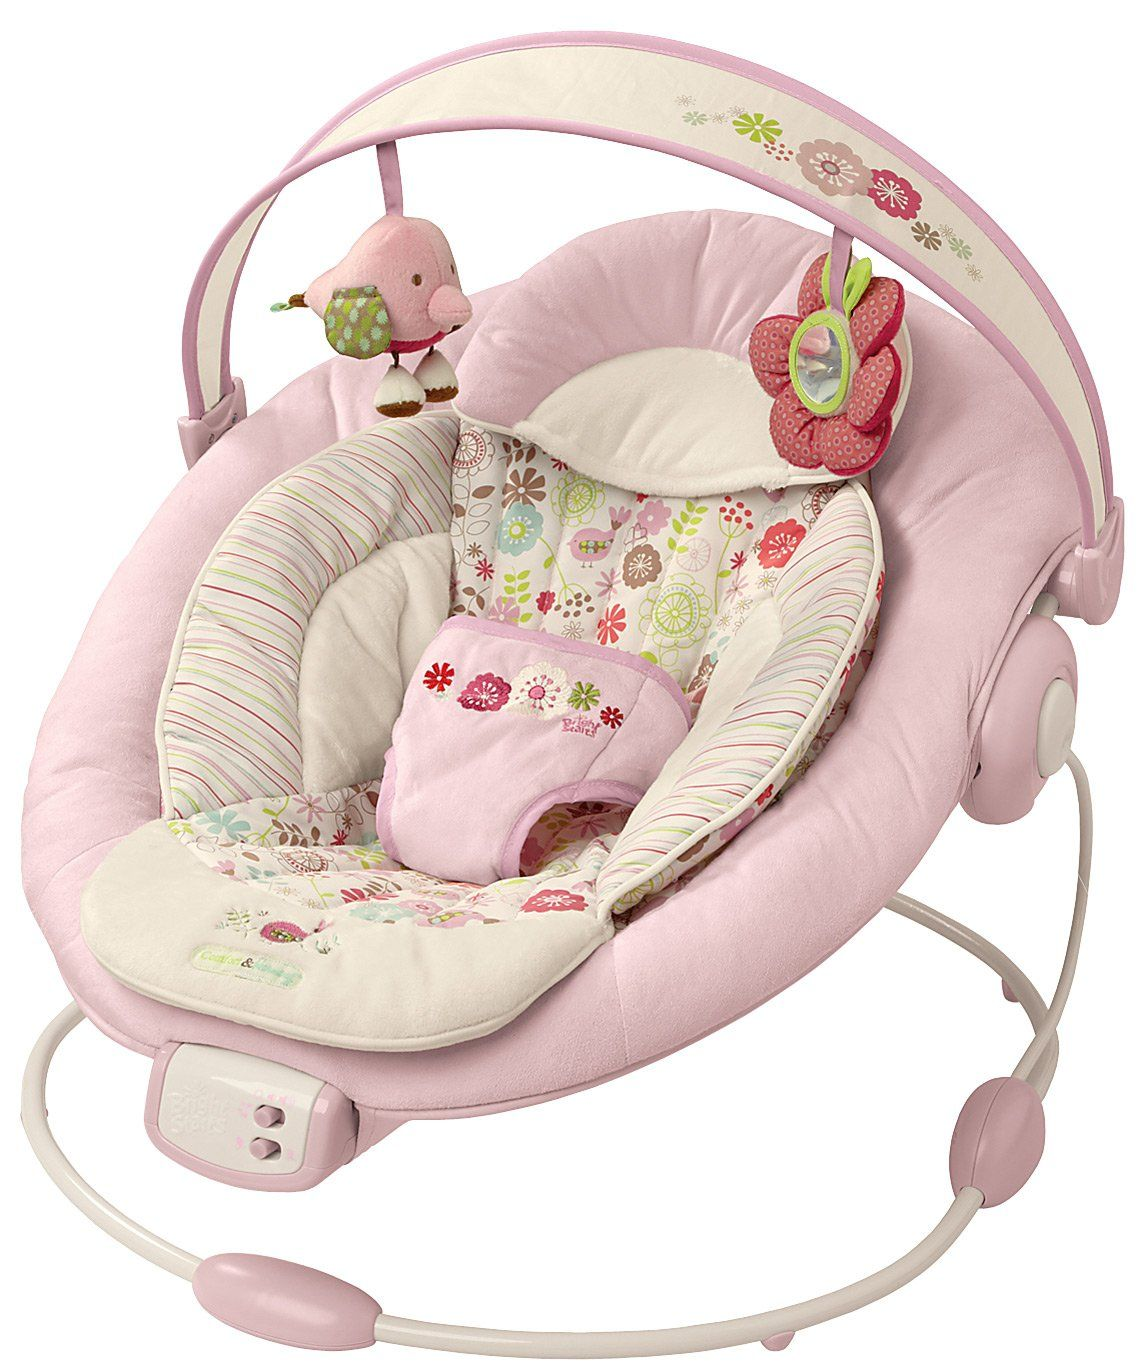 Bouncer Baby Bright Starts Comfort Harmony Cradling Bouncer Pink Baby Girl